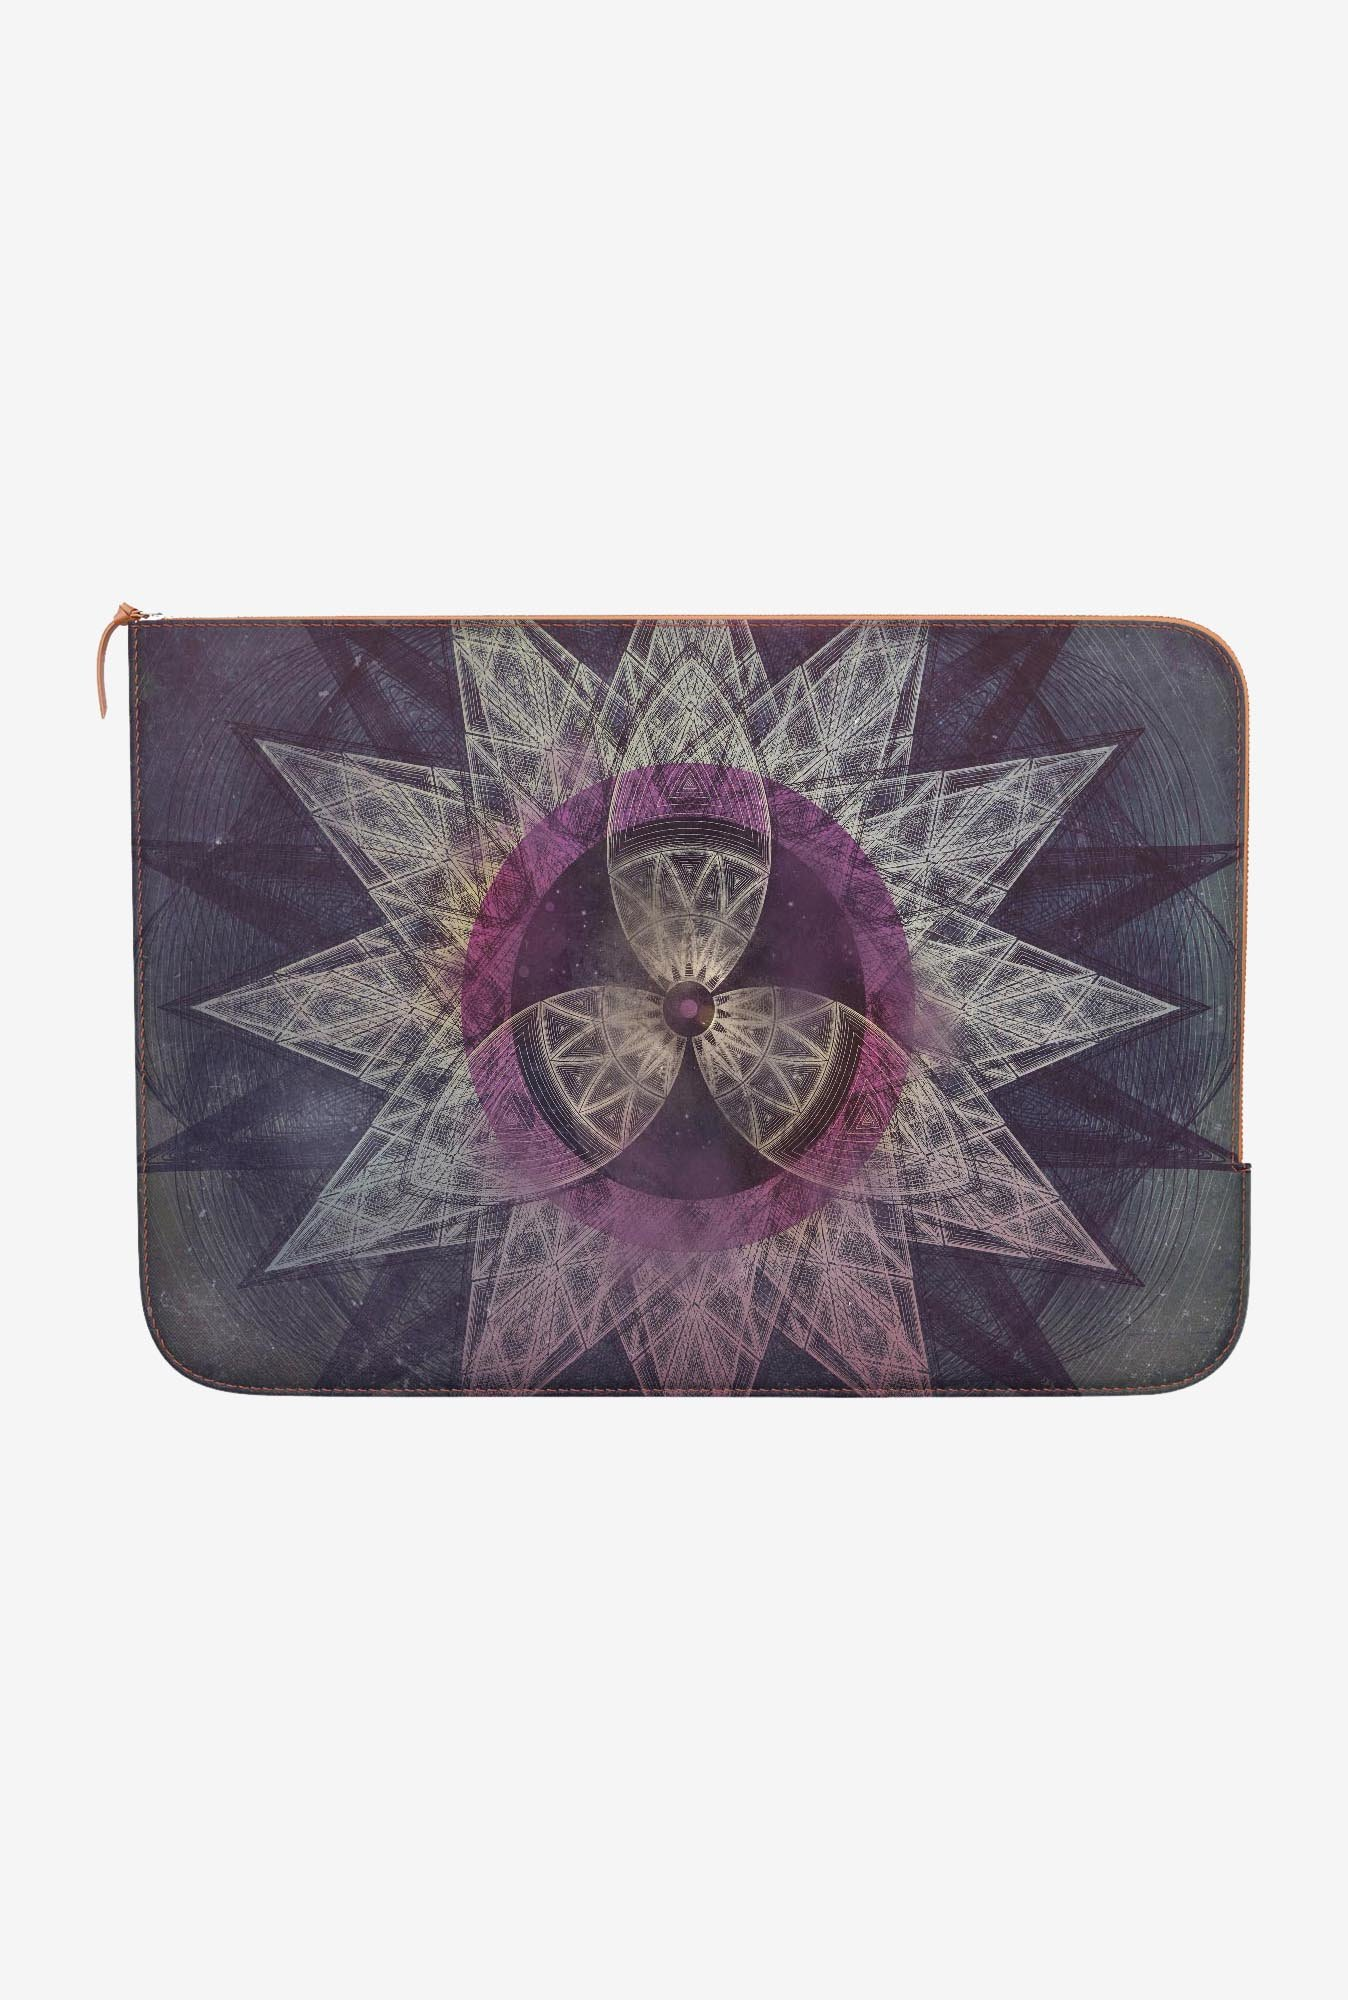 DailyObjects twwllvv myrk MacBook Pro 13 Zippered Sleeve